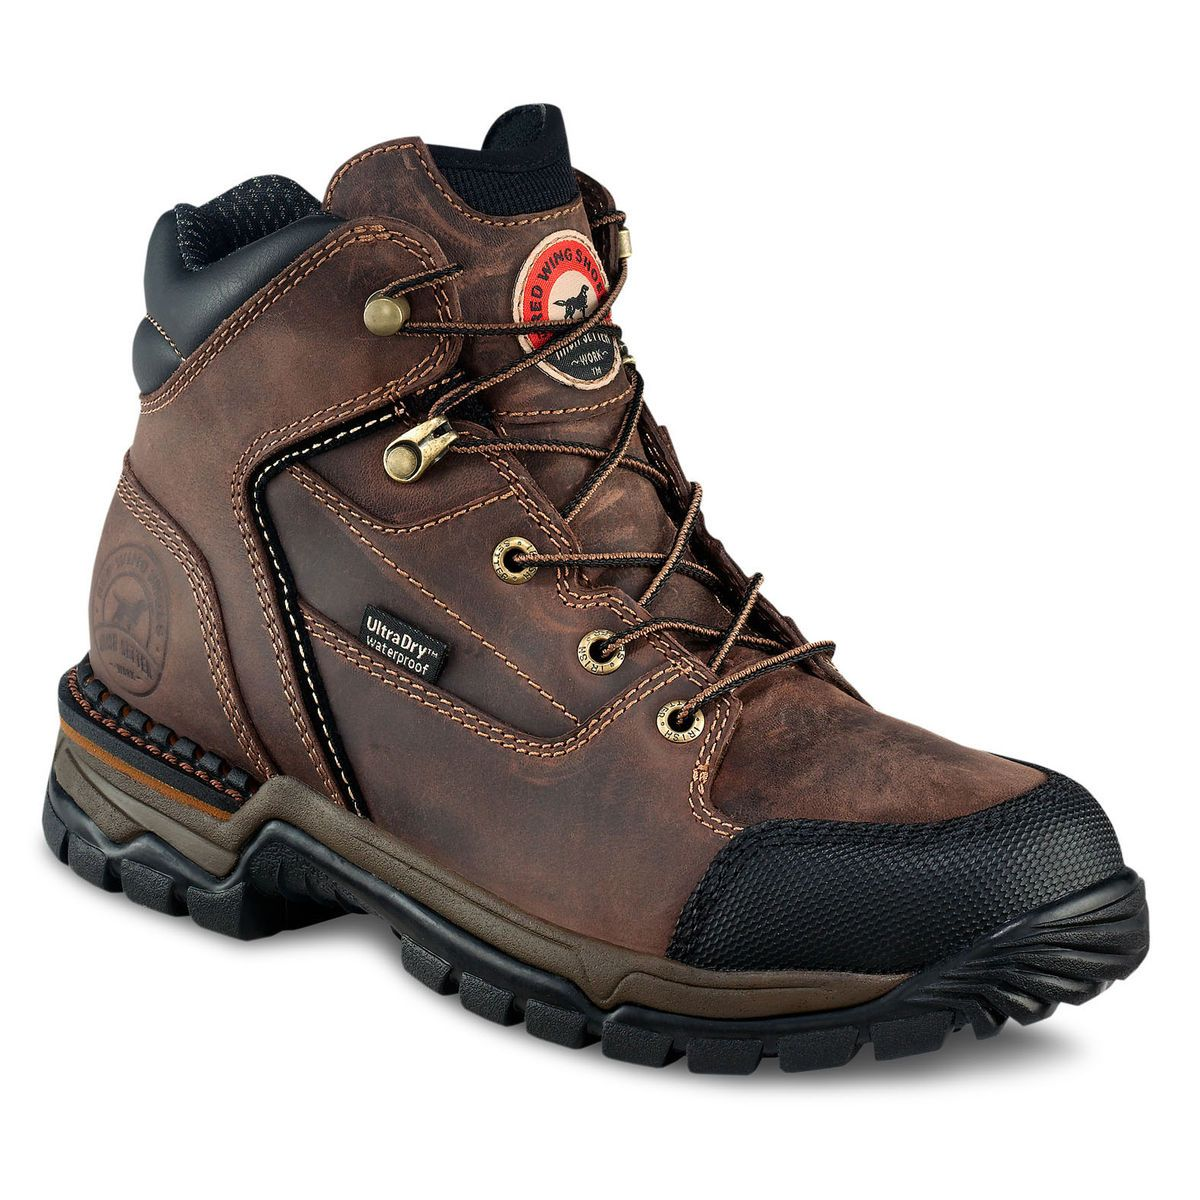 cba036b9895 Timberland Pro Workstead Black Leather Water Resistant S3 Hiker ...